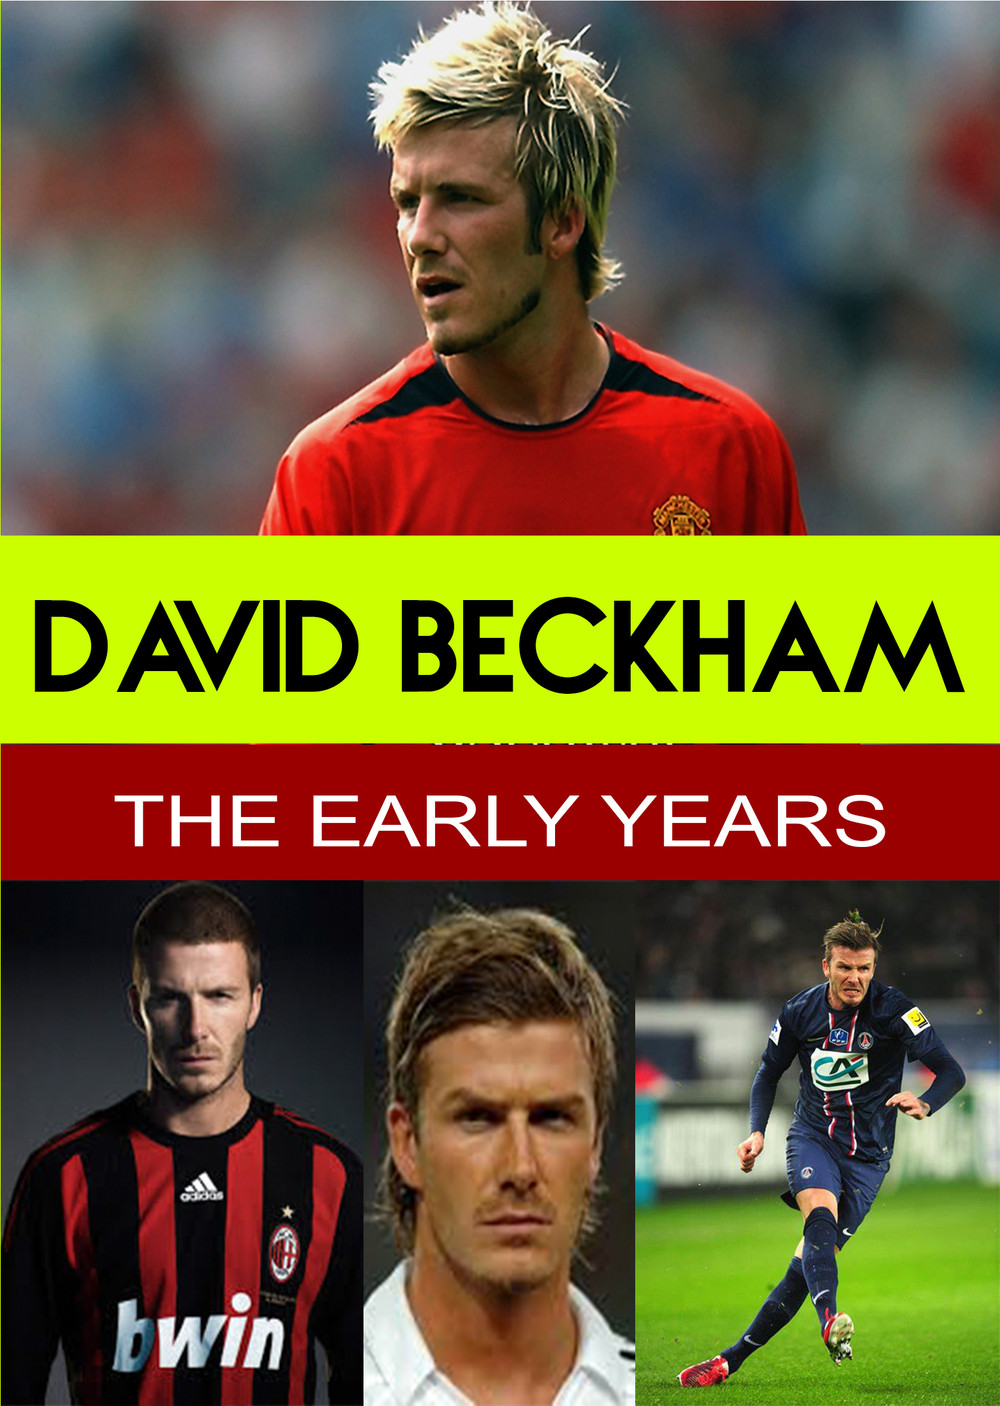 L7813 - David Beckham - The Early Years